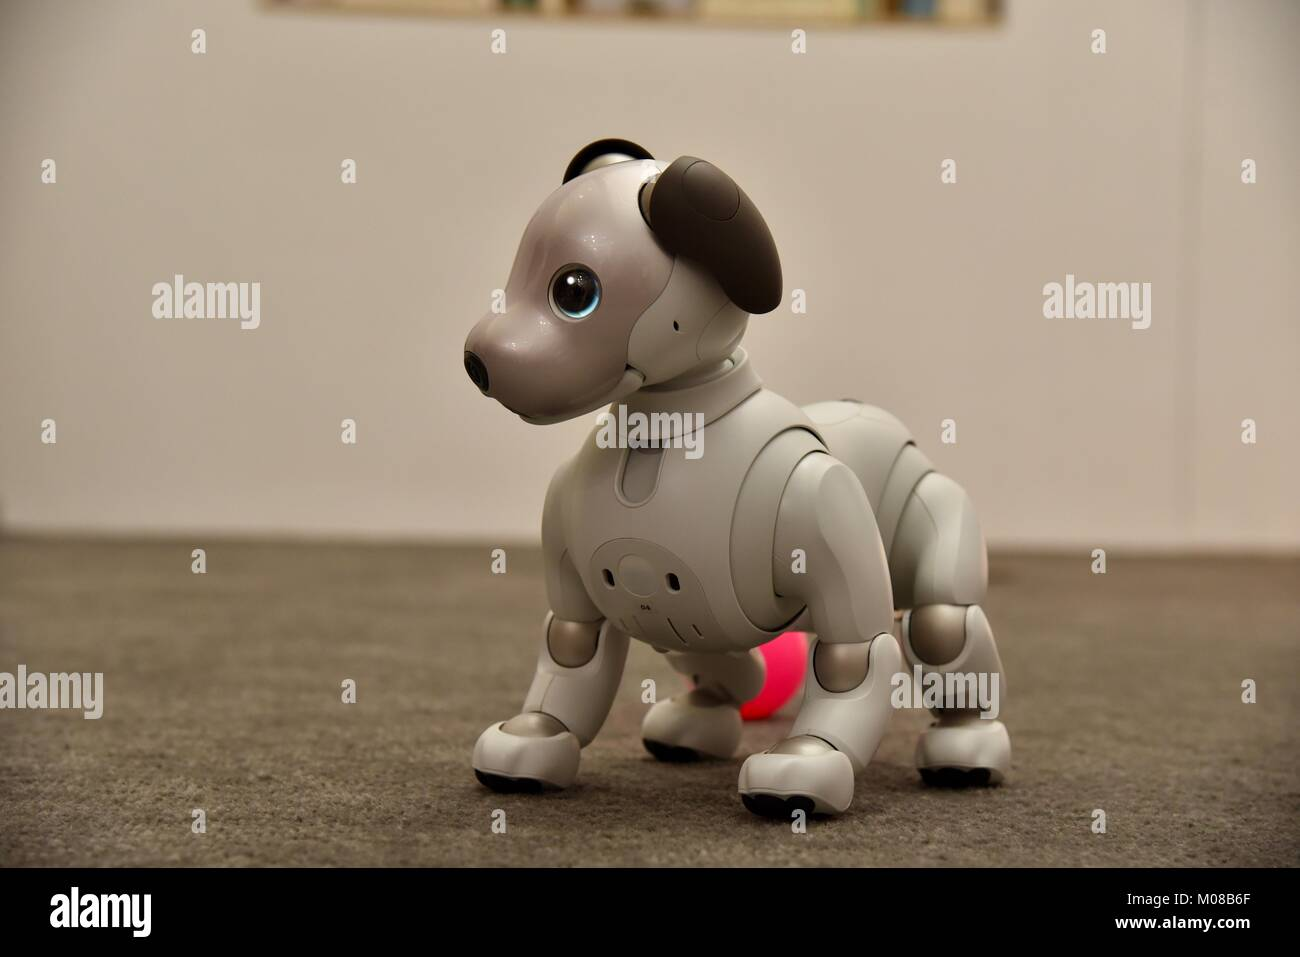 Sony's new, cute, adorable and expensive Aibo robot dog